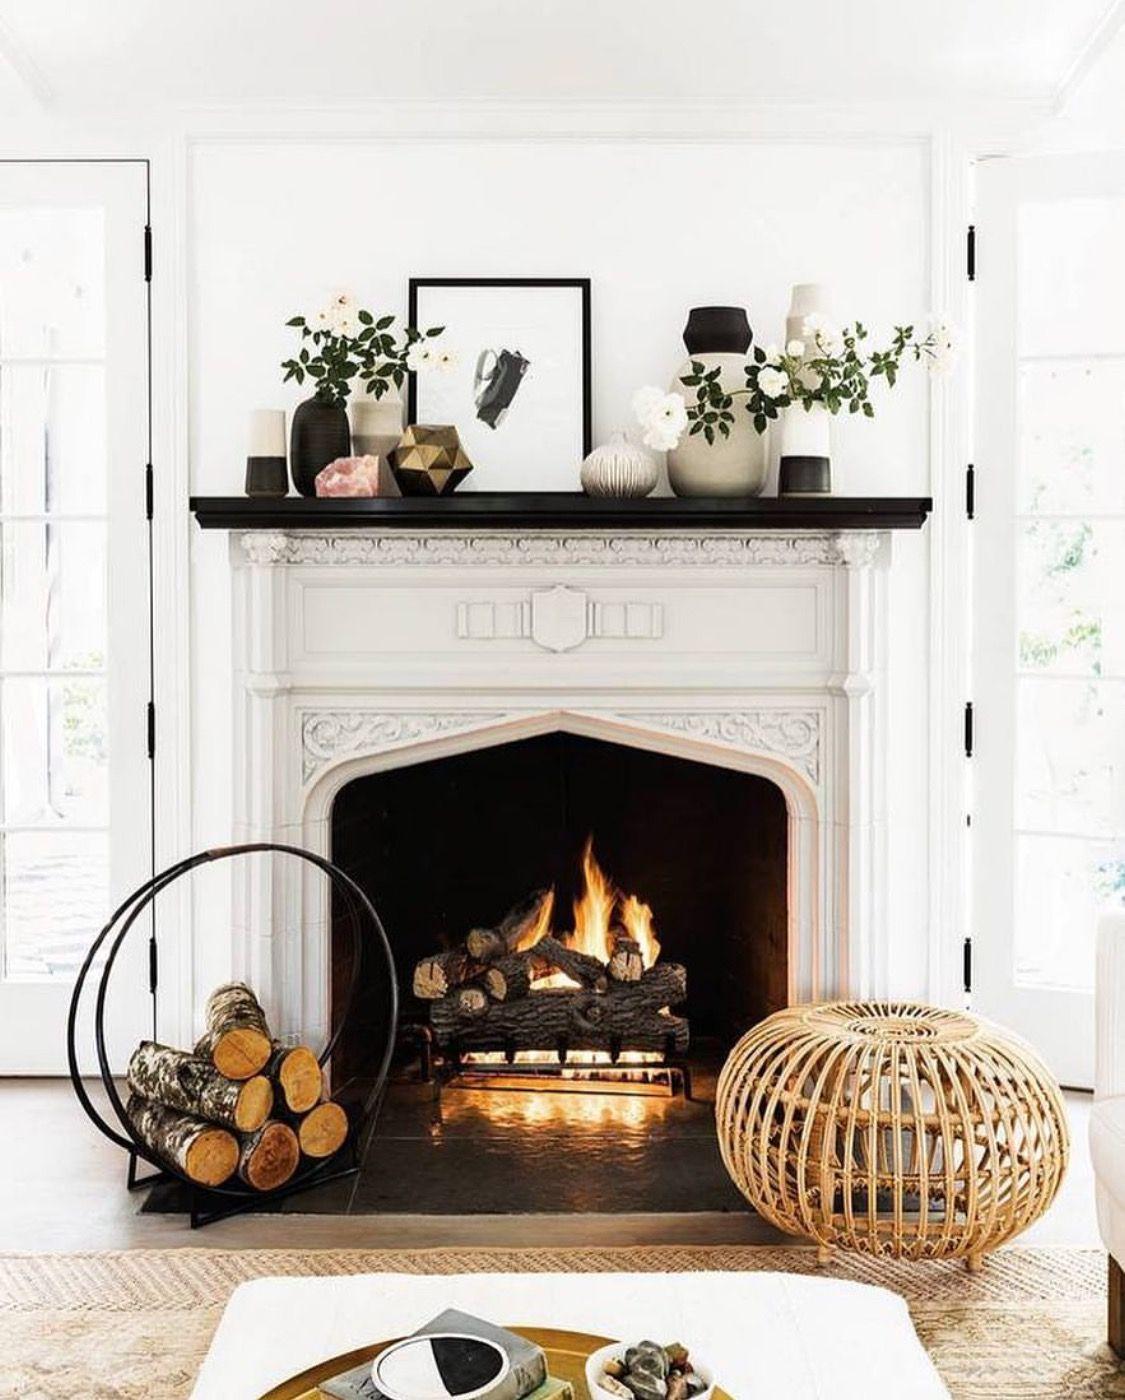 9 Ways To Make Your Home Extra Cozy Hygge Style Fireplace